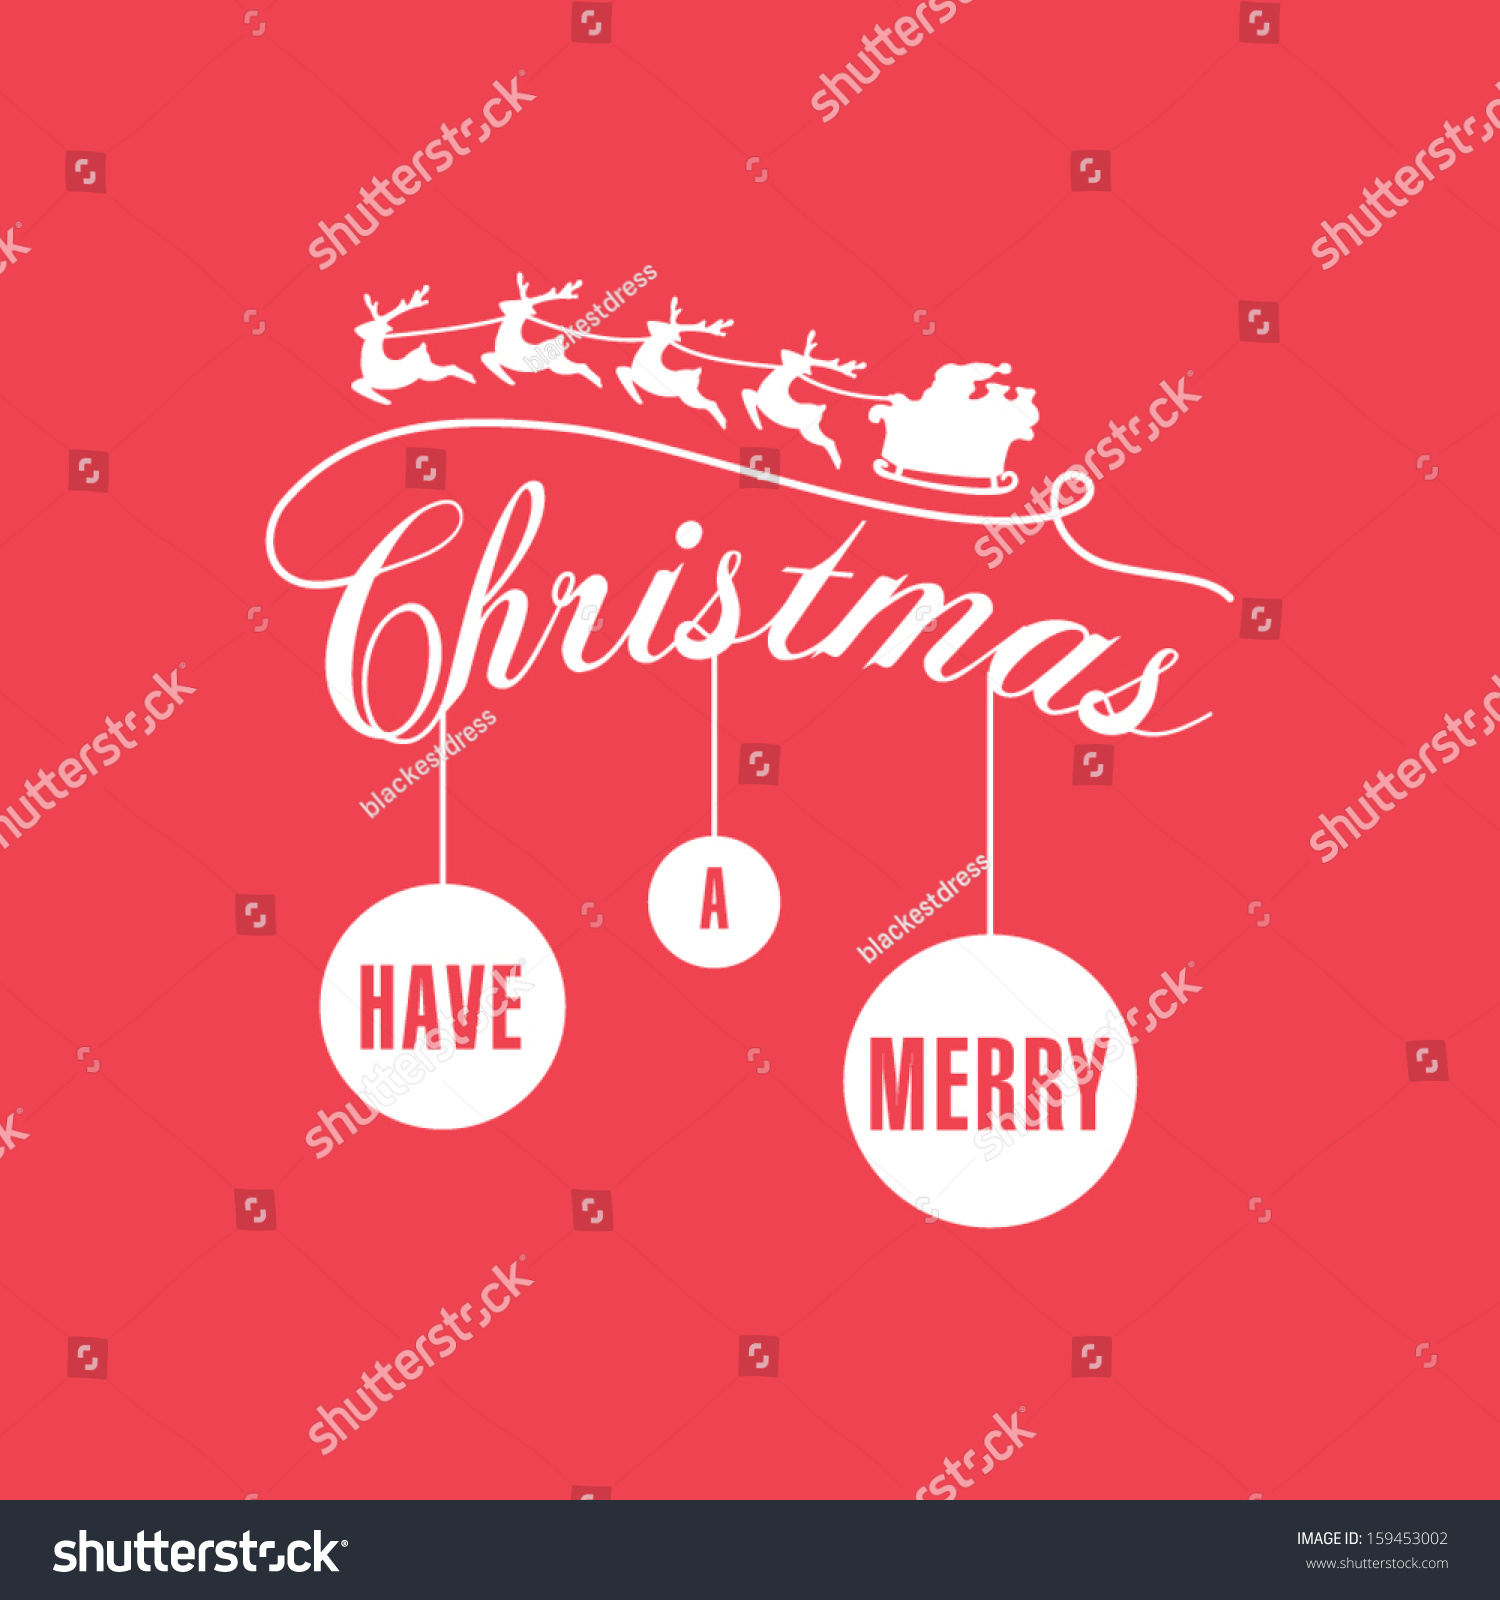 Simple modern christmas card stock vector 159453002 shutterstock m4hsunfo